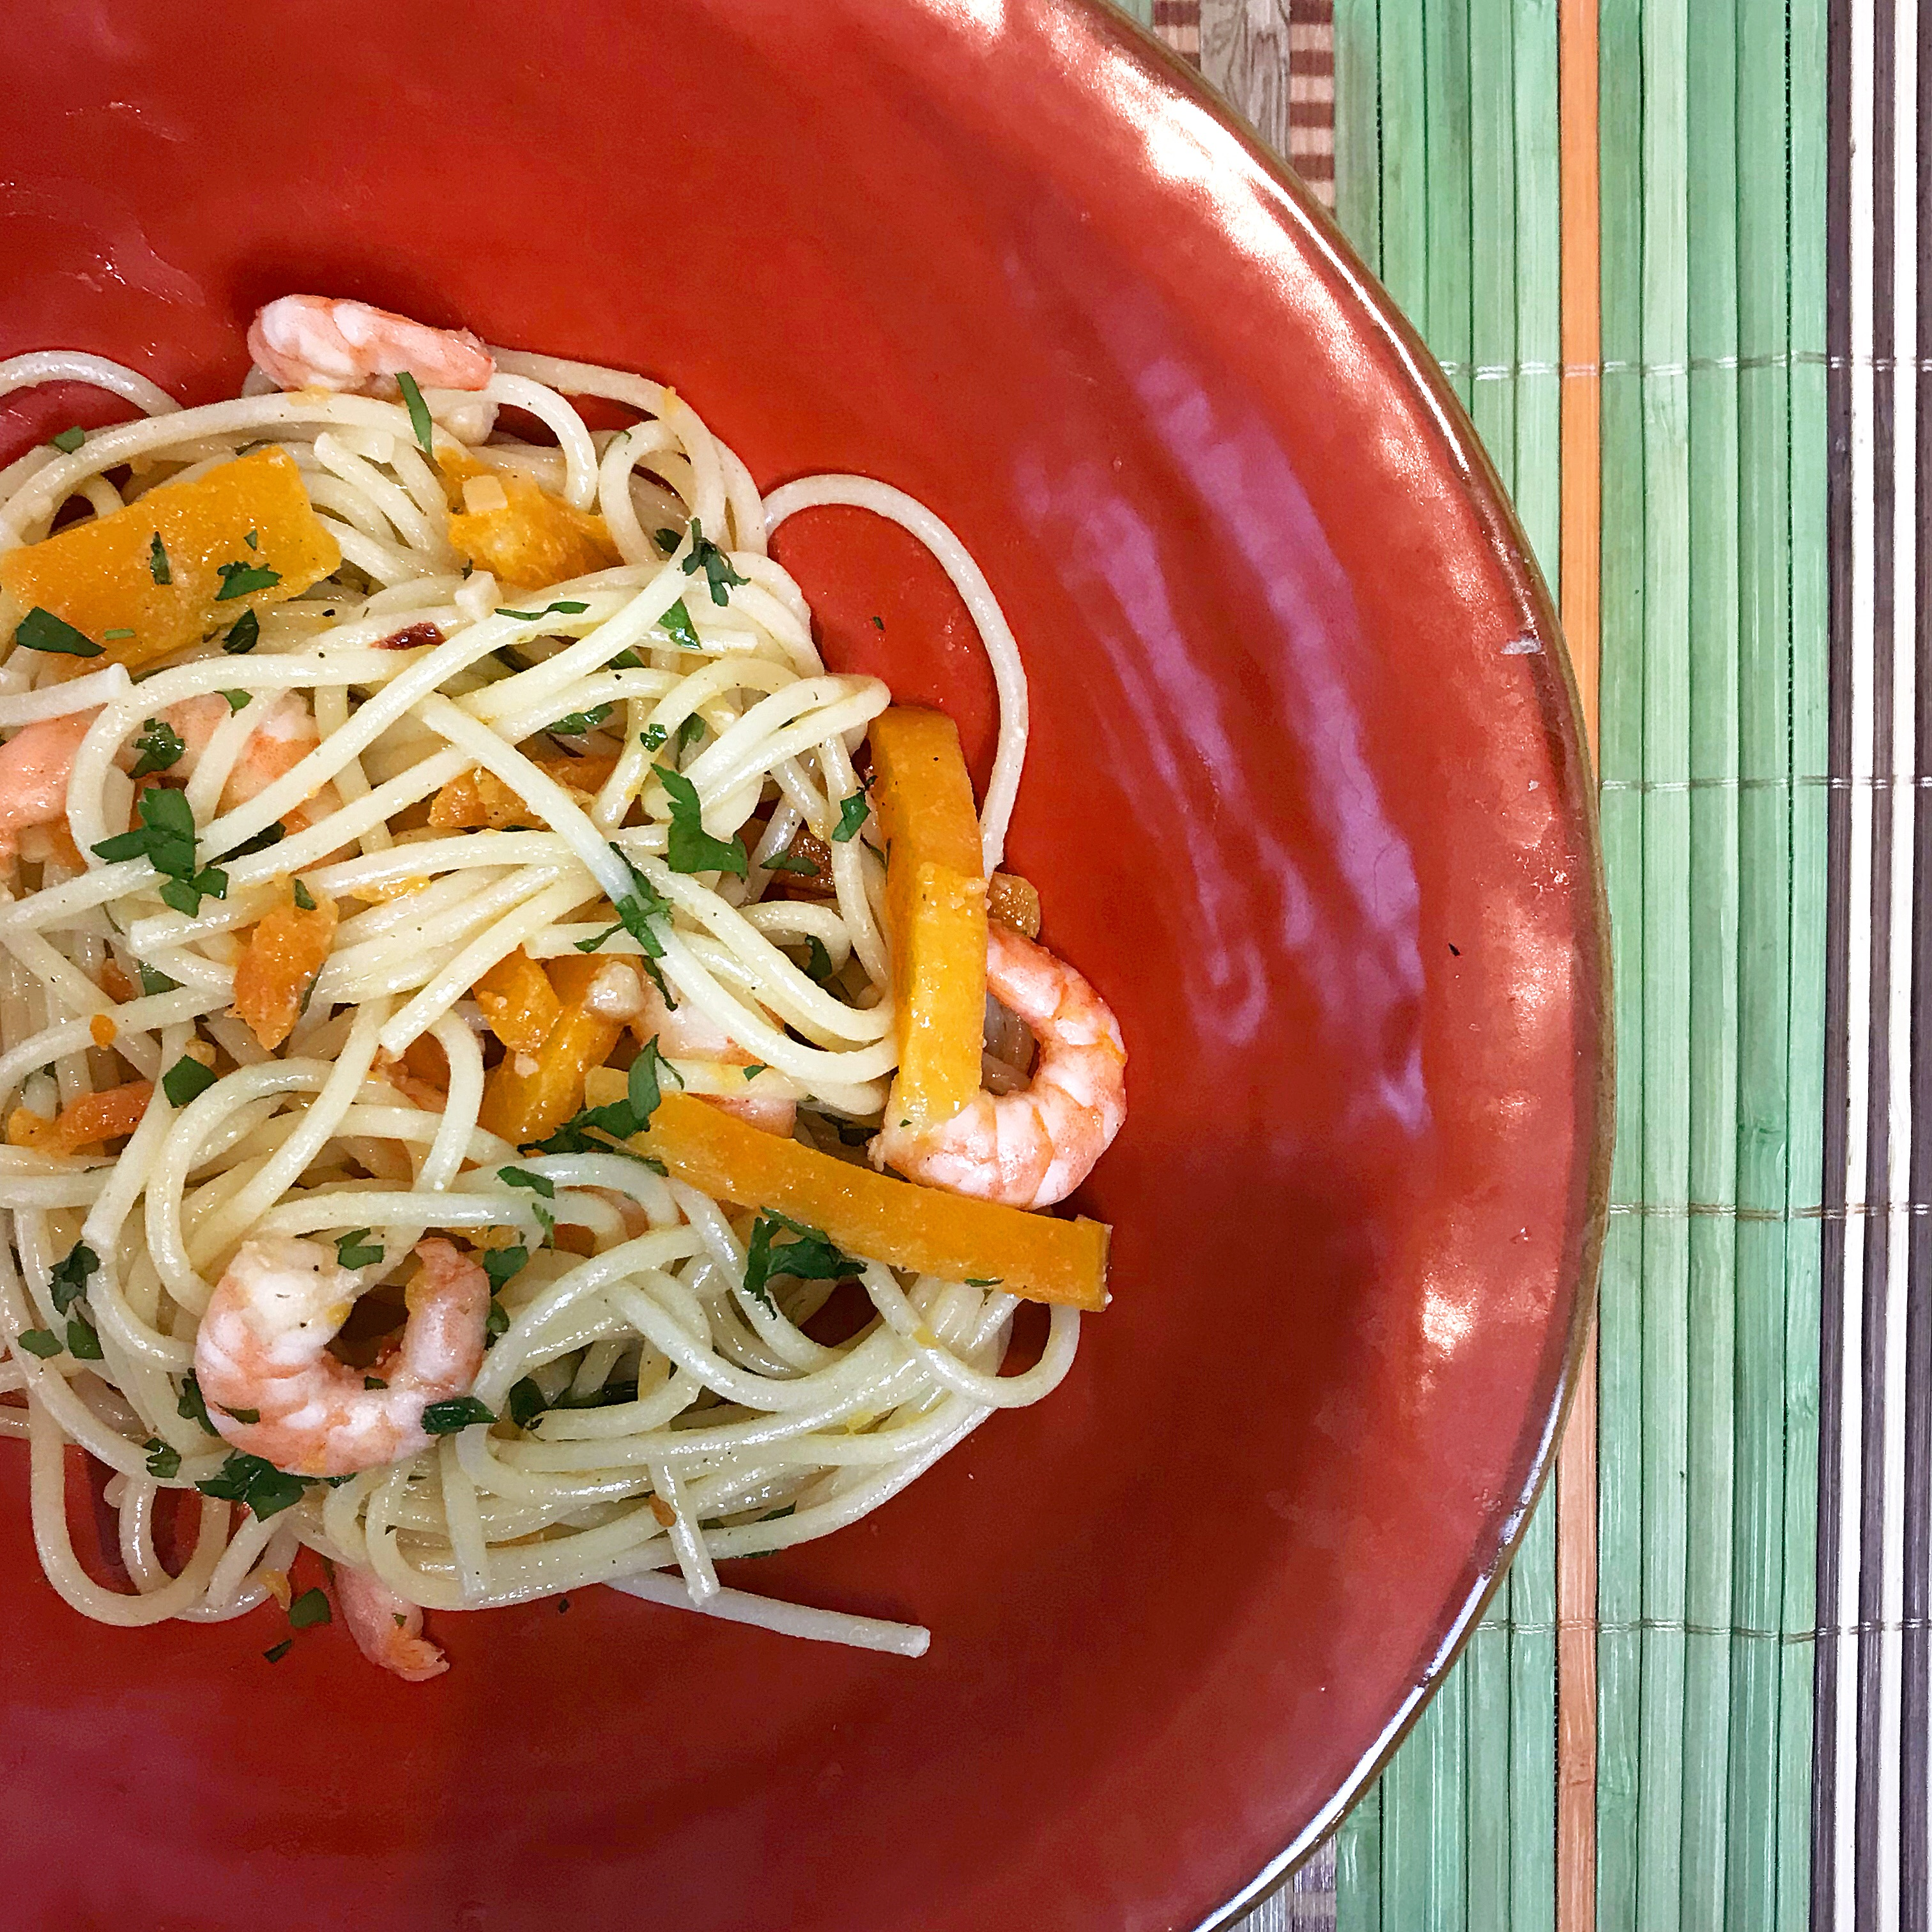 A red bowl of spaghetti and pasta with sliced butternut squash and prawns